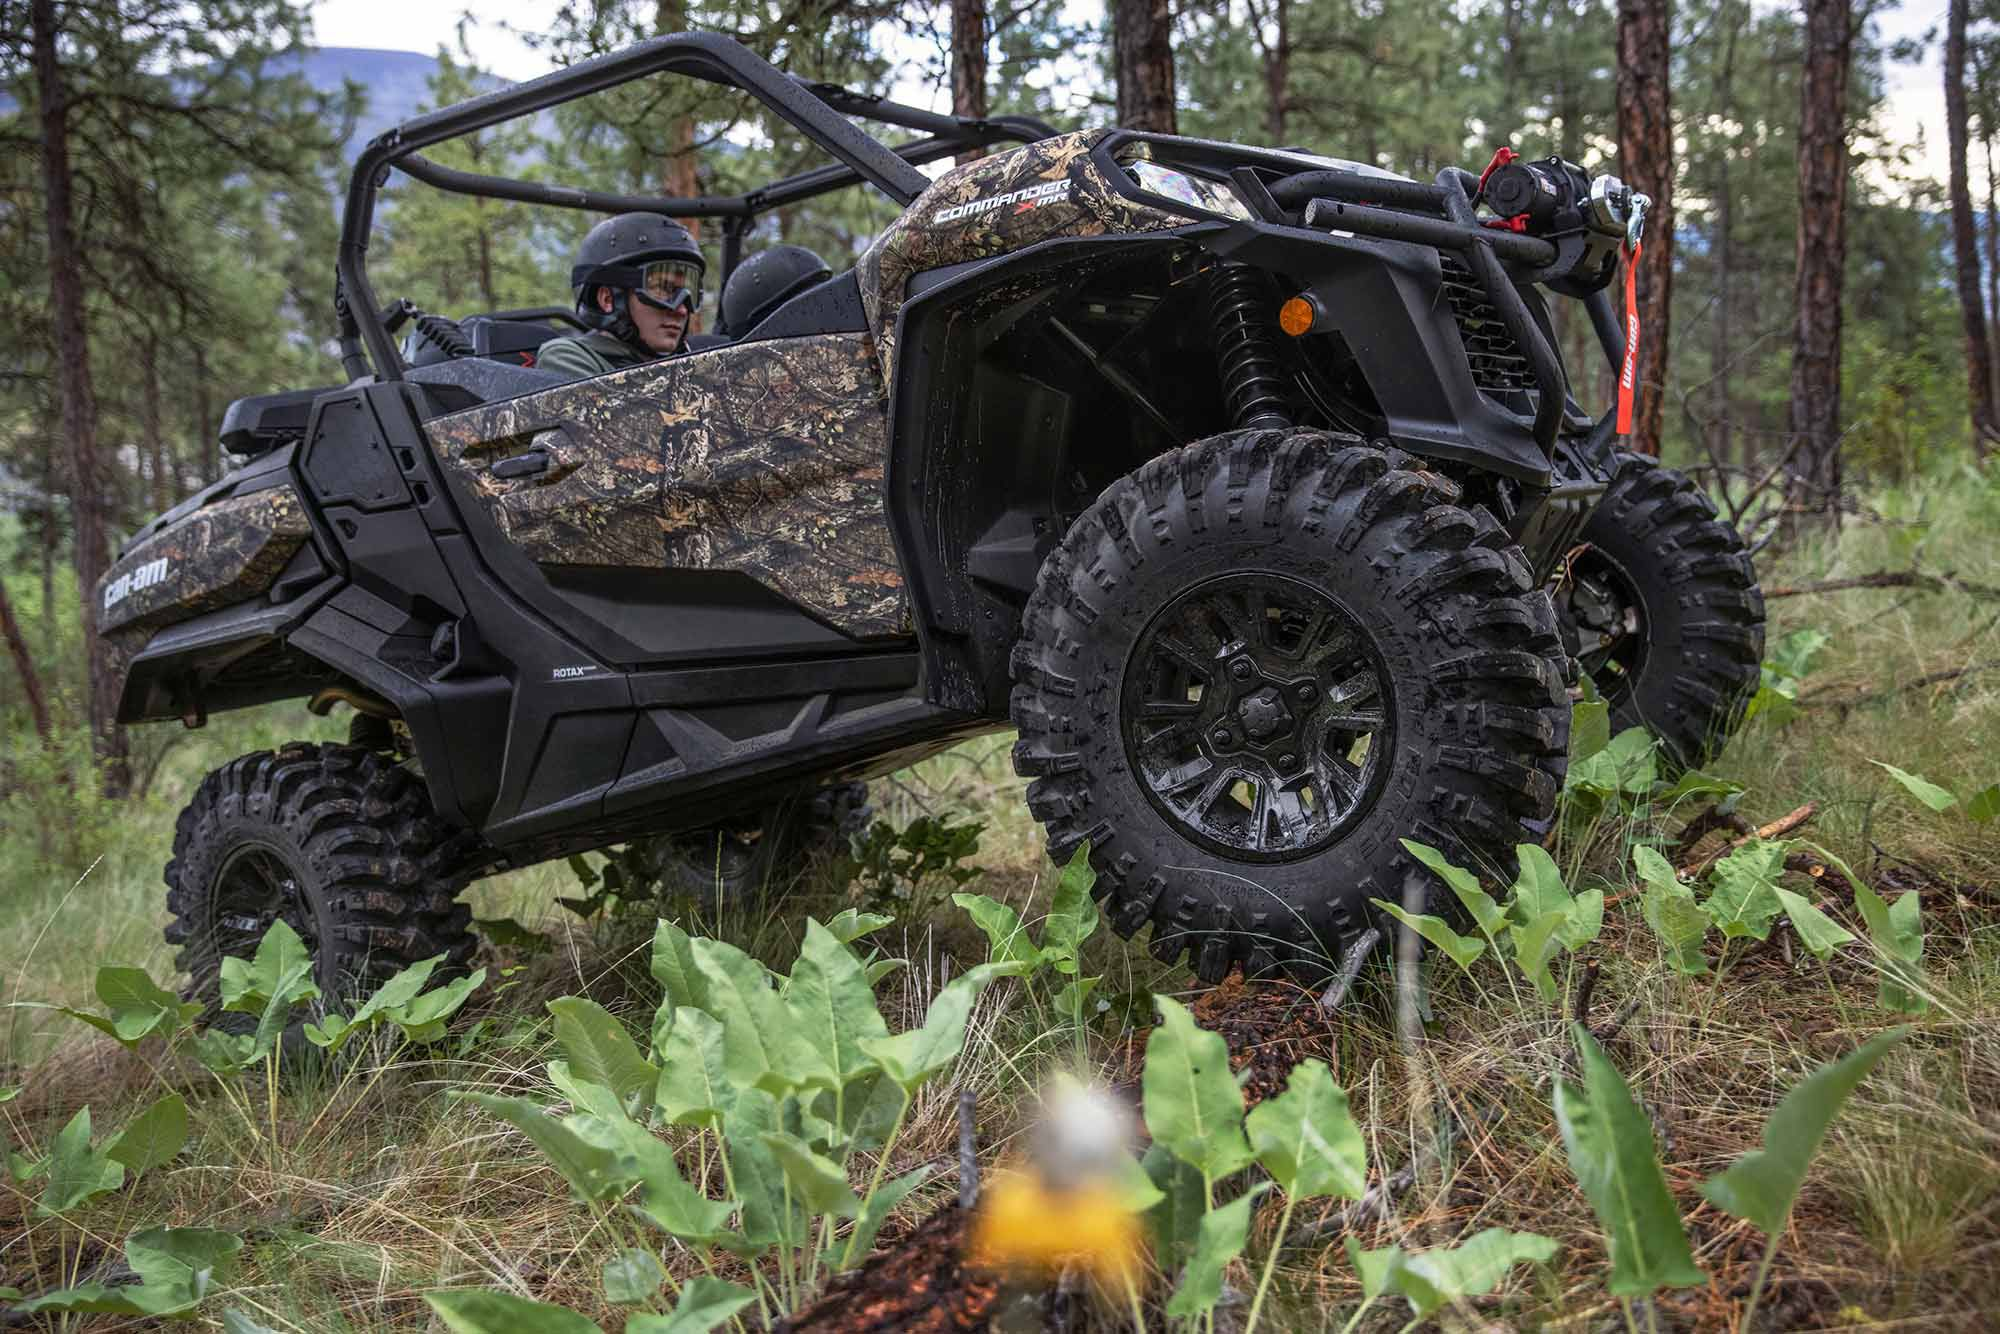 With 100 hp under your right foot, the Commander X MR will be more than entertaining on any terrain.